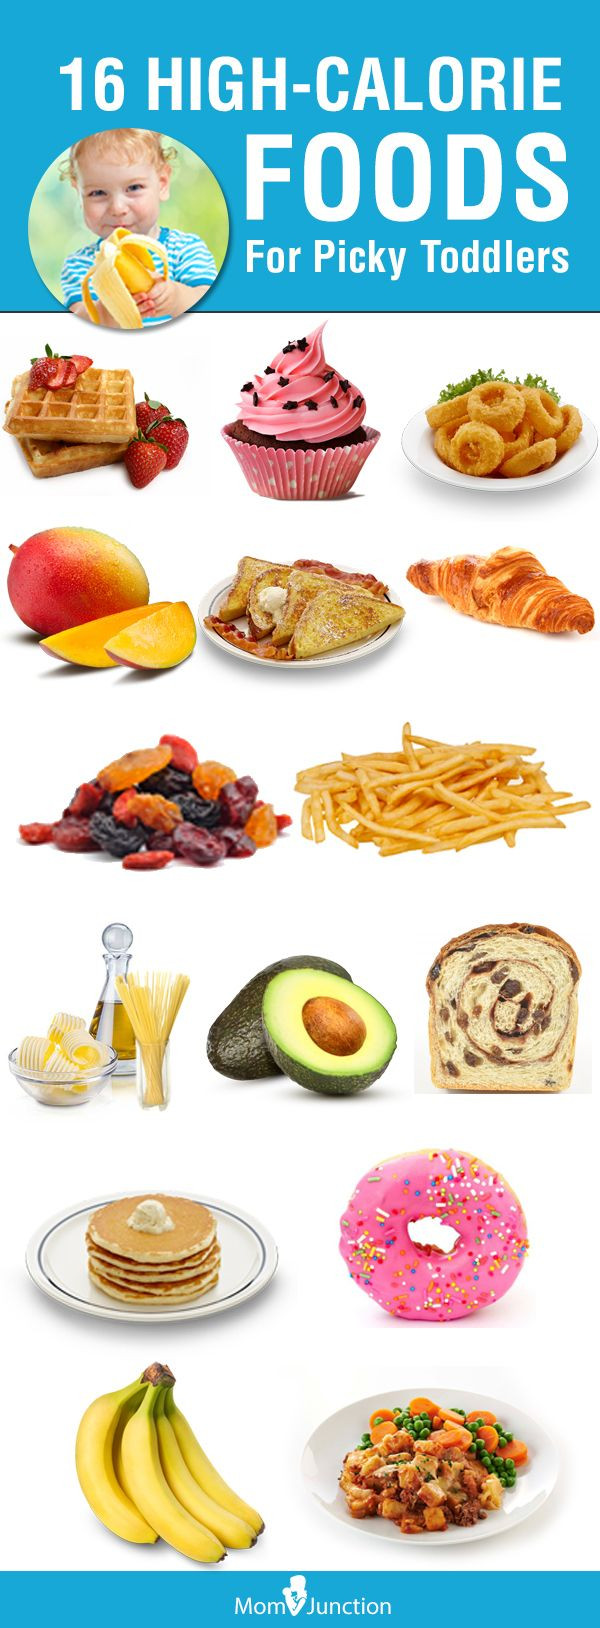 Healthy High Calorie Snacks  16 Great High Calorie Foods For Toddlers